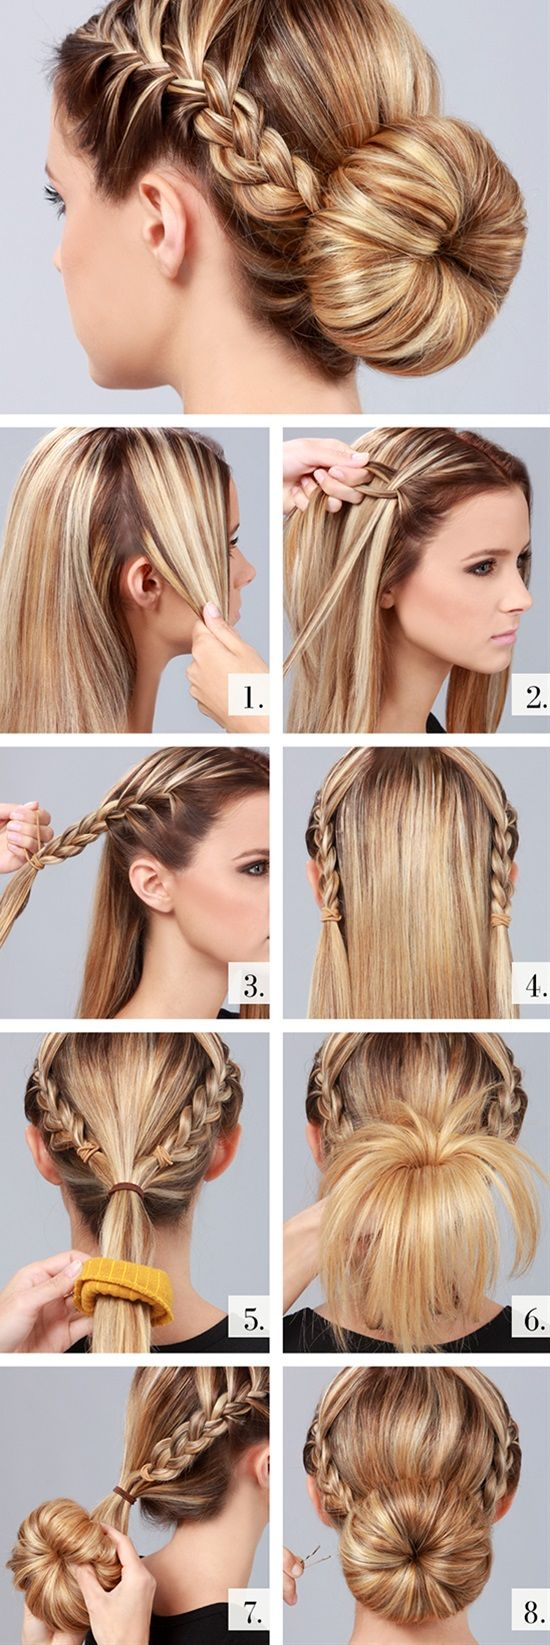 When it comes to styling hair, you simply cannot go wrong with braids. Whether your hair is long and thick or medium length and thin, whether it's summer or winter, braids are perfect for any time and situation. Need something fancy? Adorn your braid with